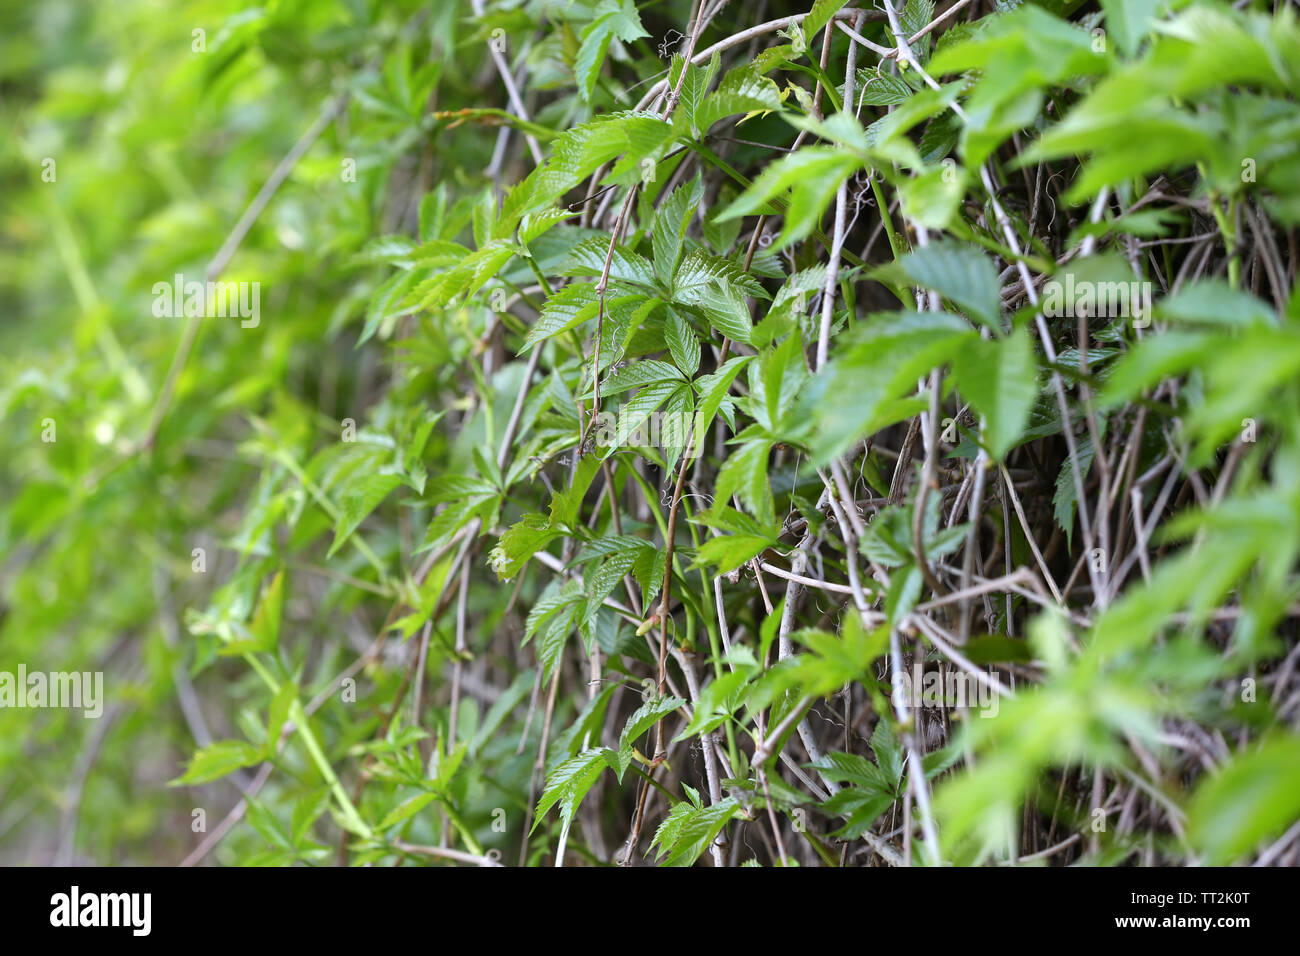 Green ivy leaves wall - Stock Image